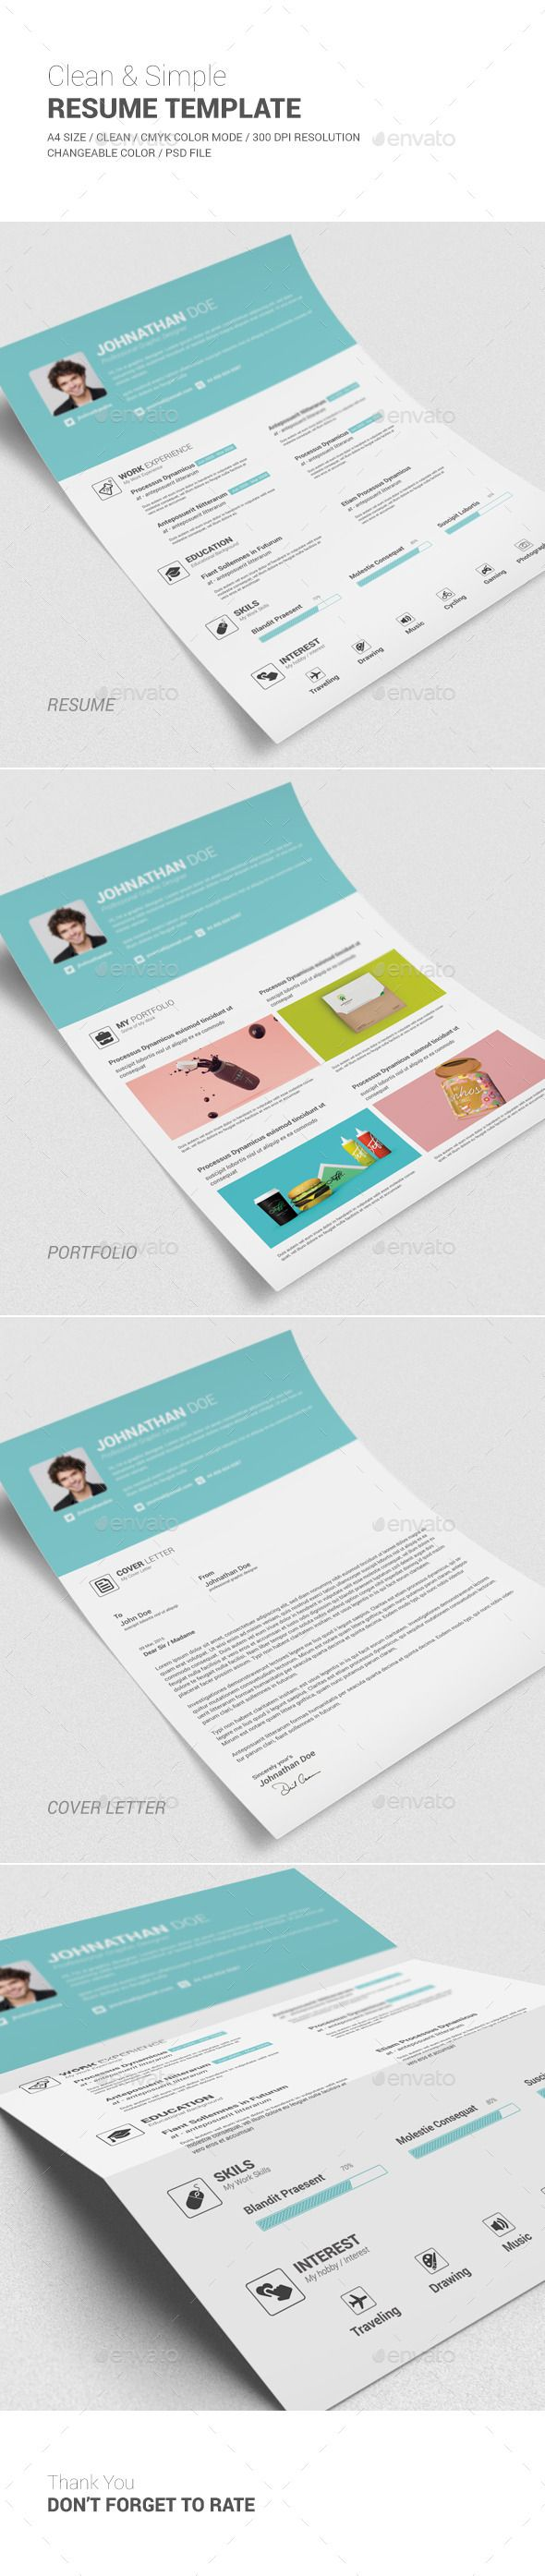 Clean Simple Resume Template Photoshop Psd Cover Letter